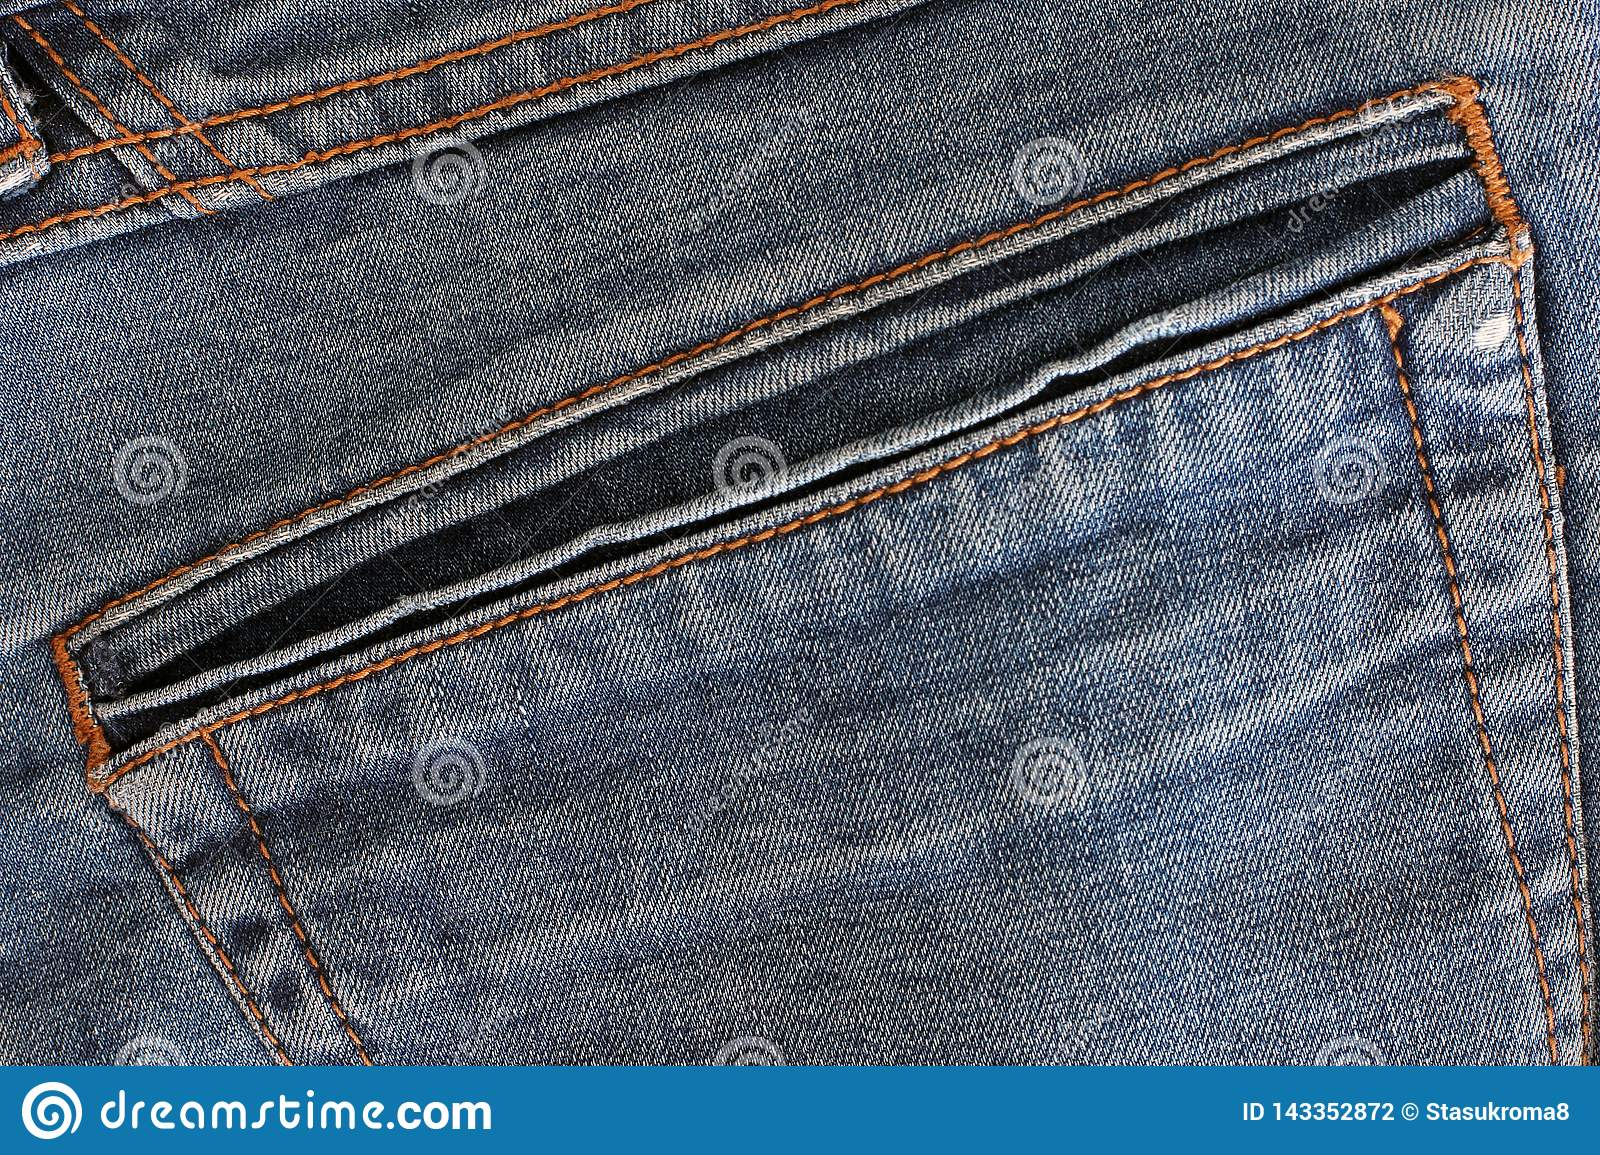 Fabric background. Part of jeans pants